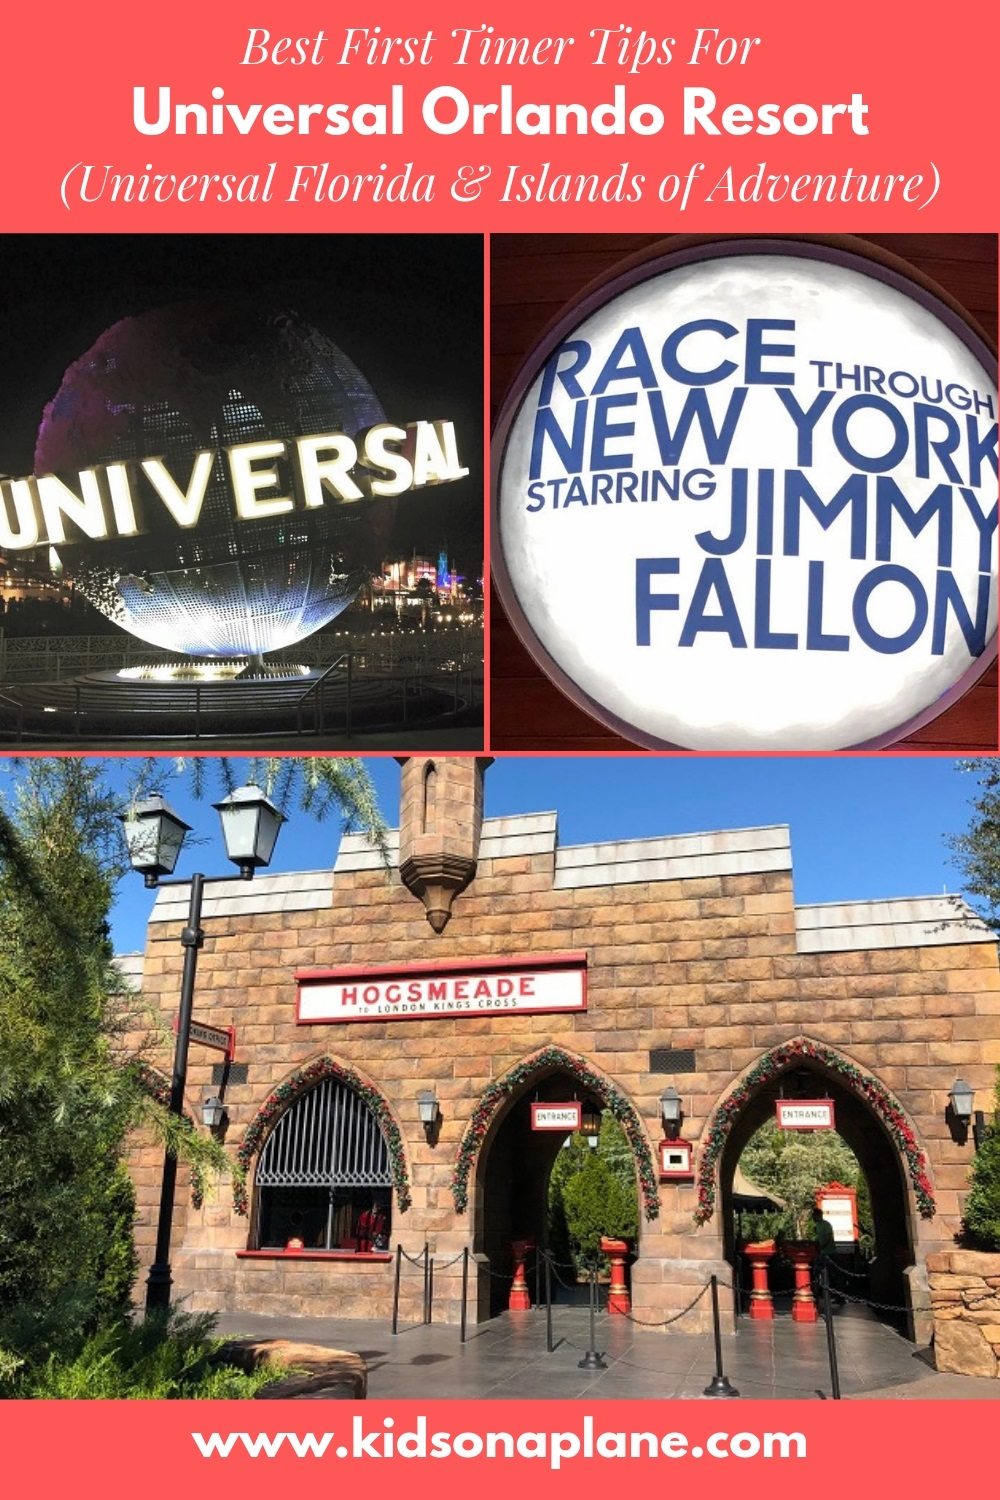 How to Plan a Universal Orlando Resort Trip - Best First Time Visitor Tips for Universal Florida and Islands of Adventure